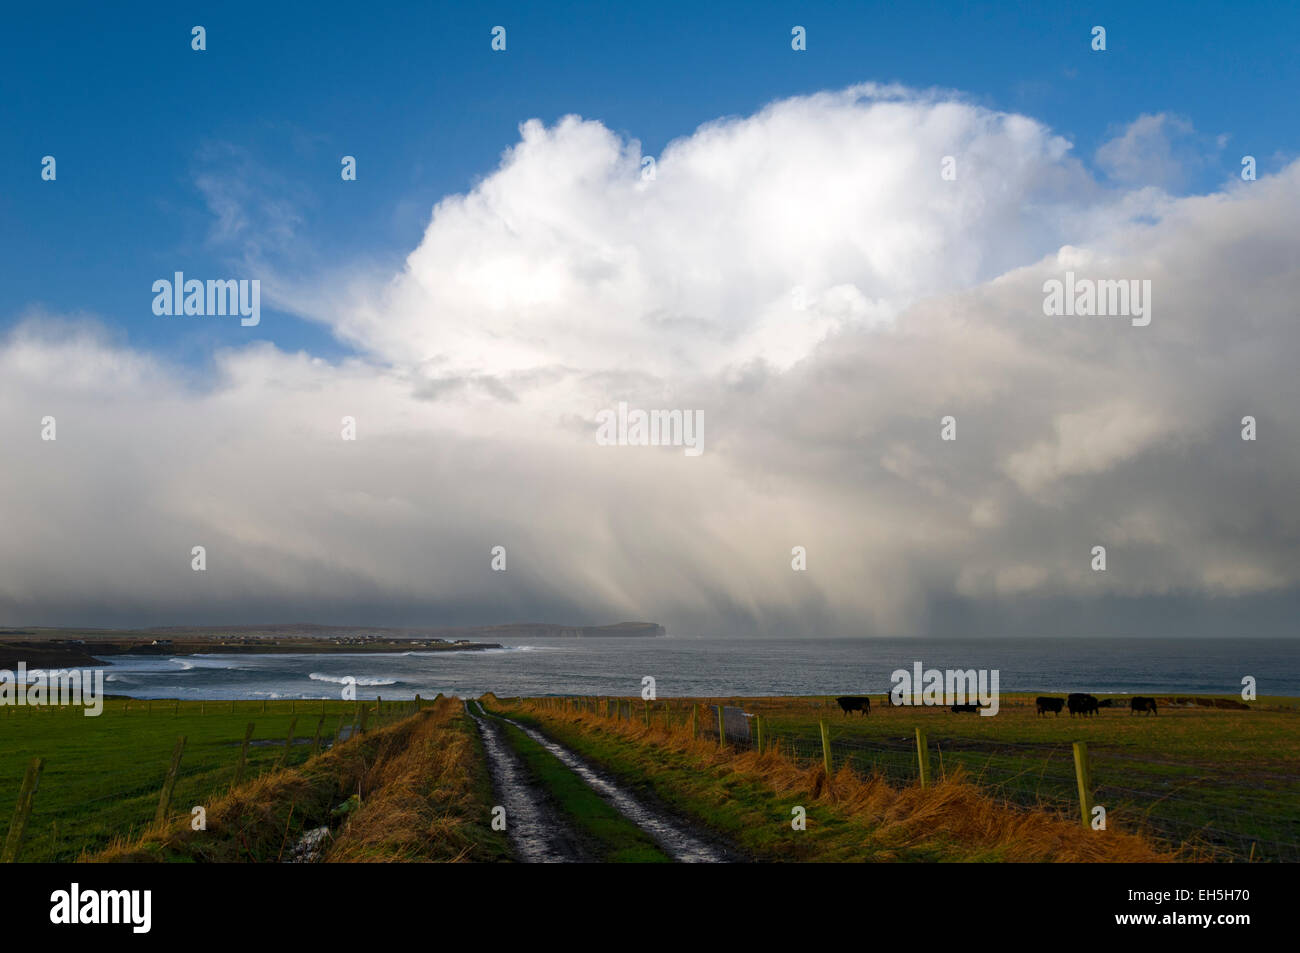 Storm cloud over the Pentland Firth, approaching the north coast of Caithness, near of Mey. Scotland, UK. Dunnet - Stock Image